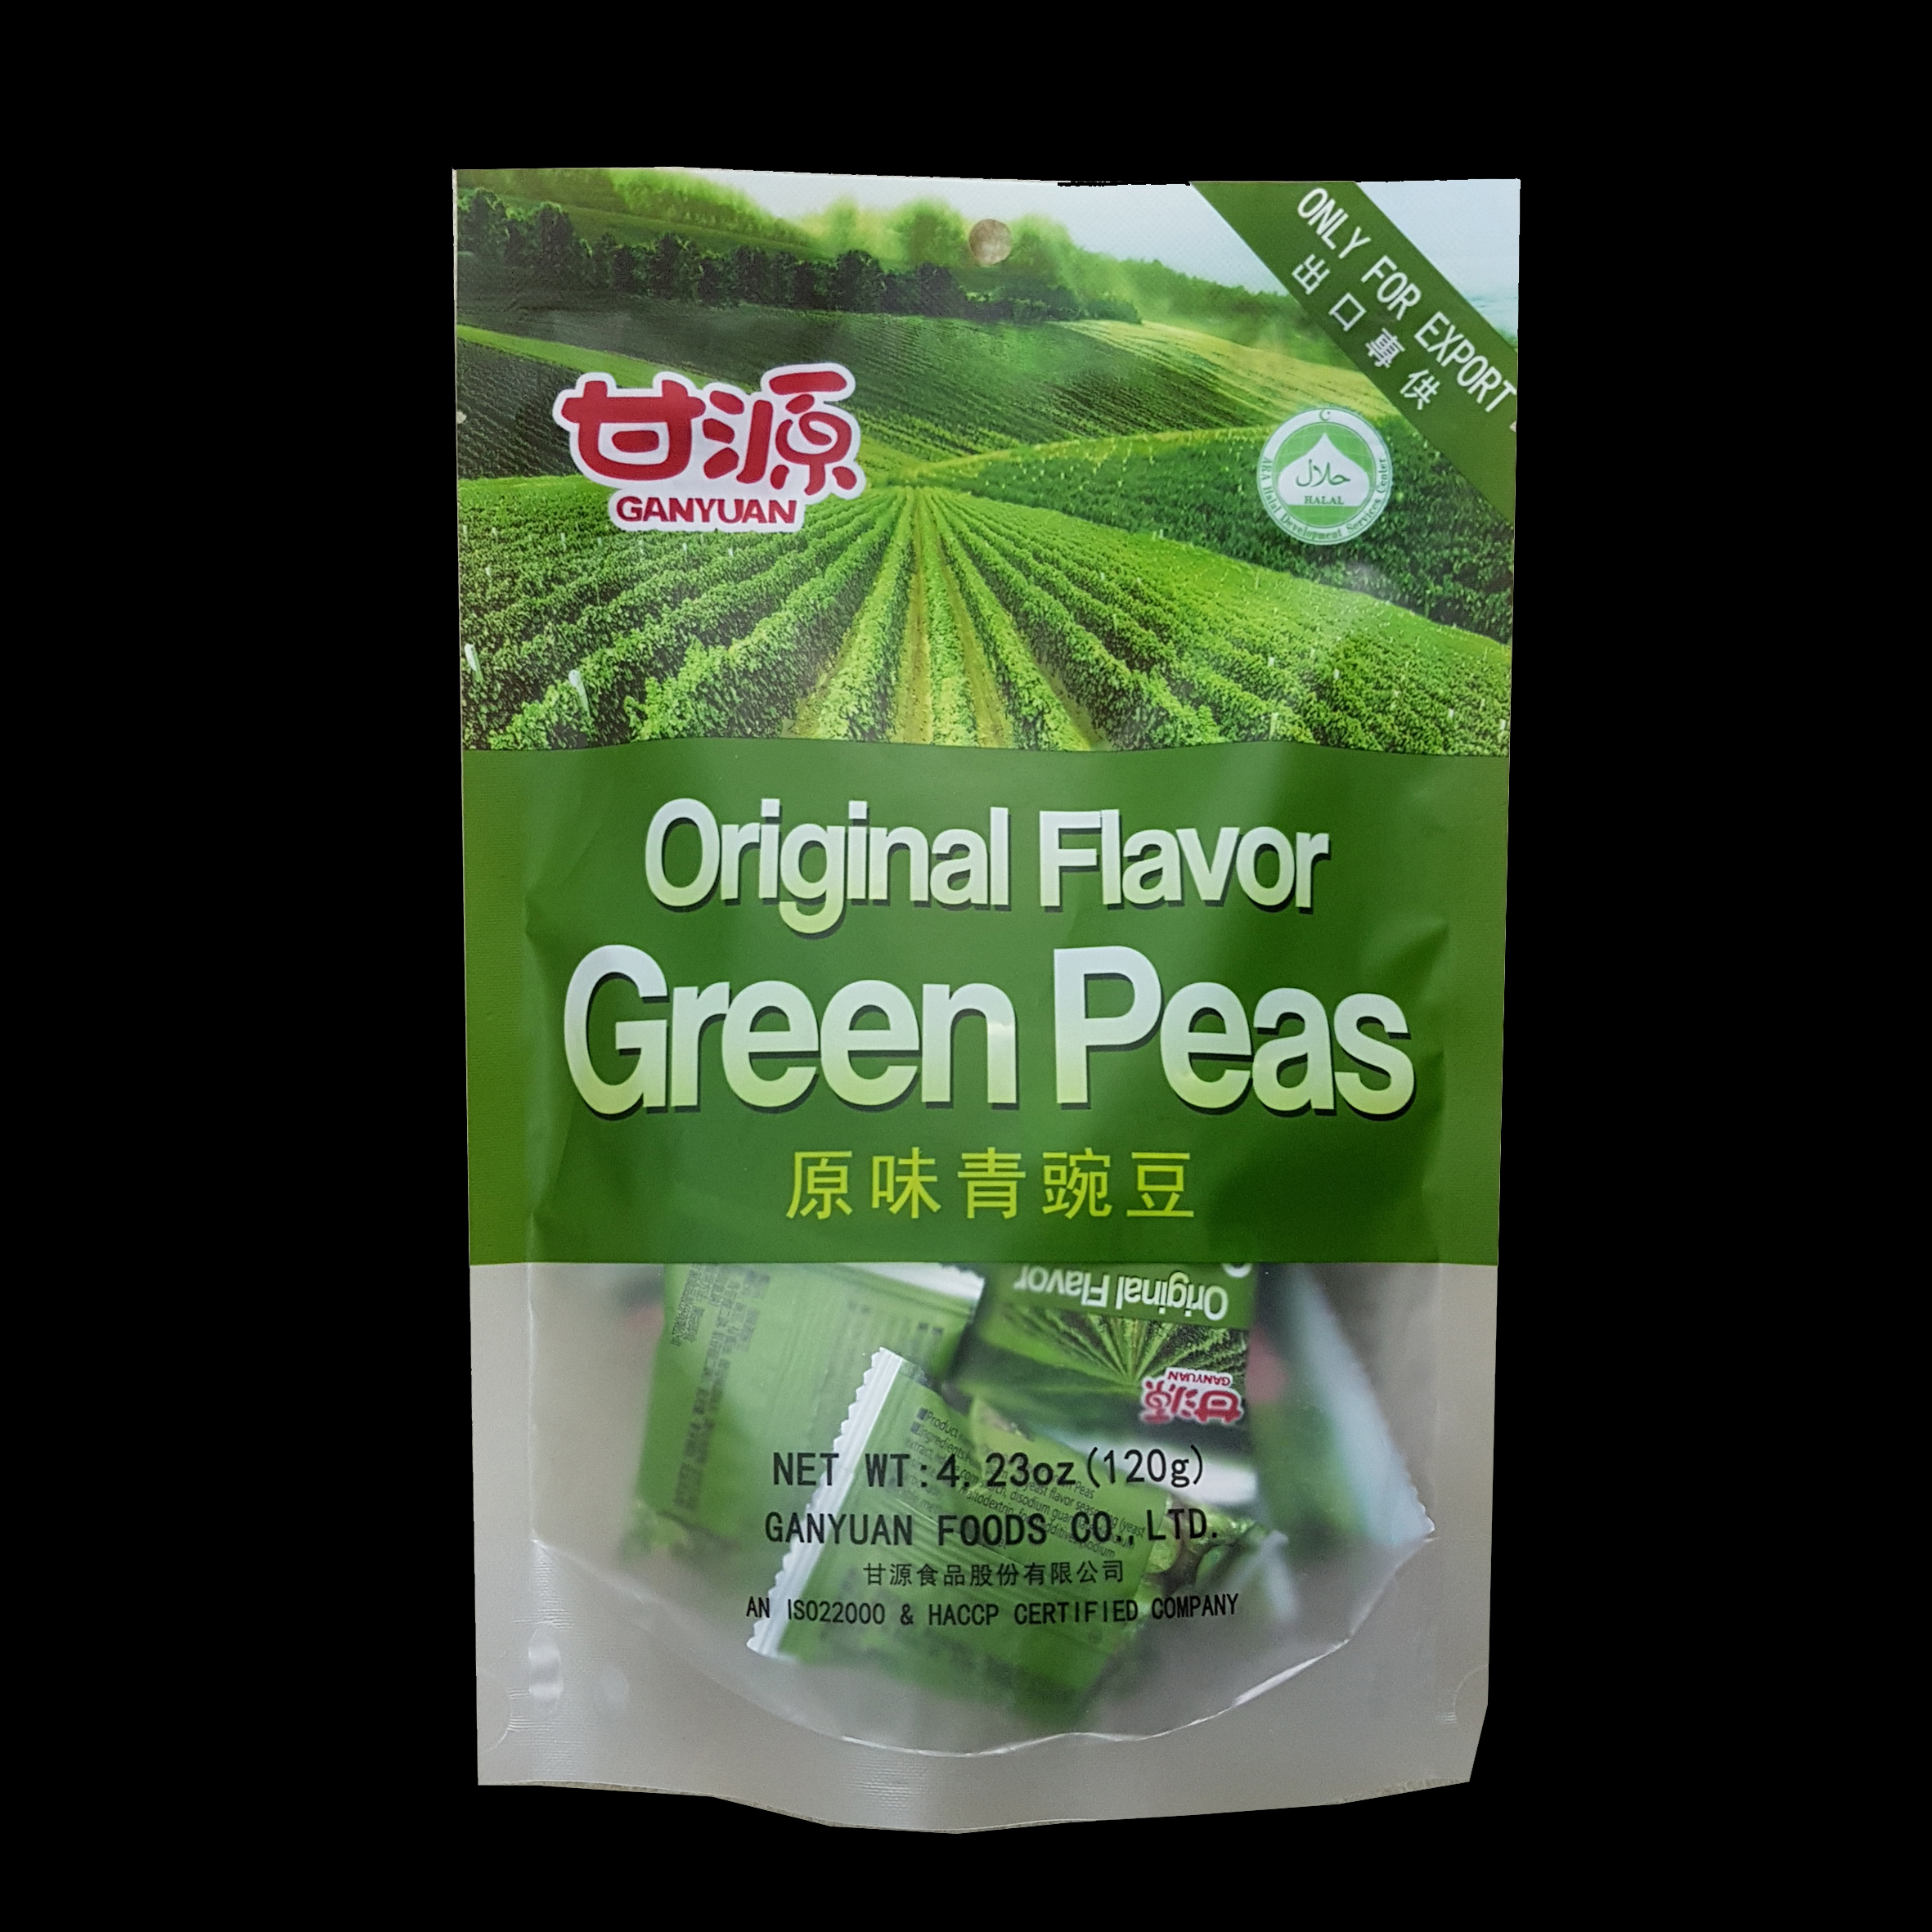 Gan Yuan Original Flavour Green Peas 120 grams BLACK BACK.jpg